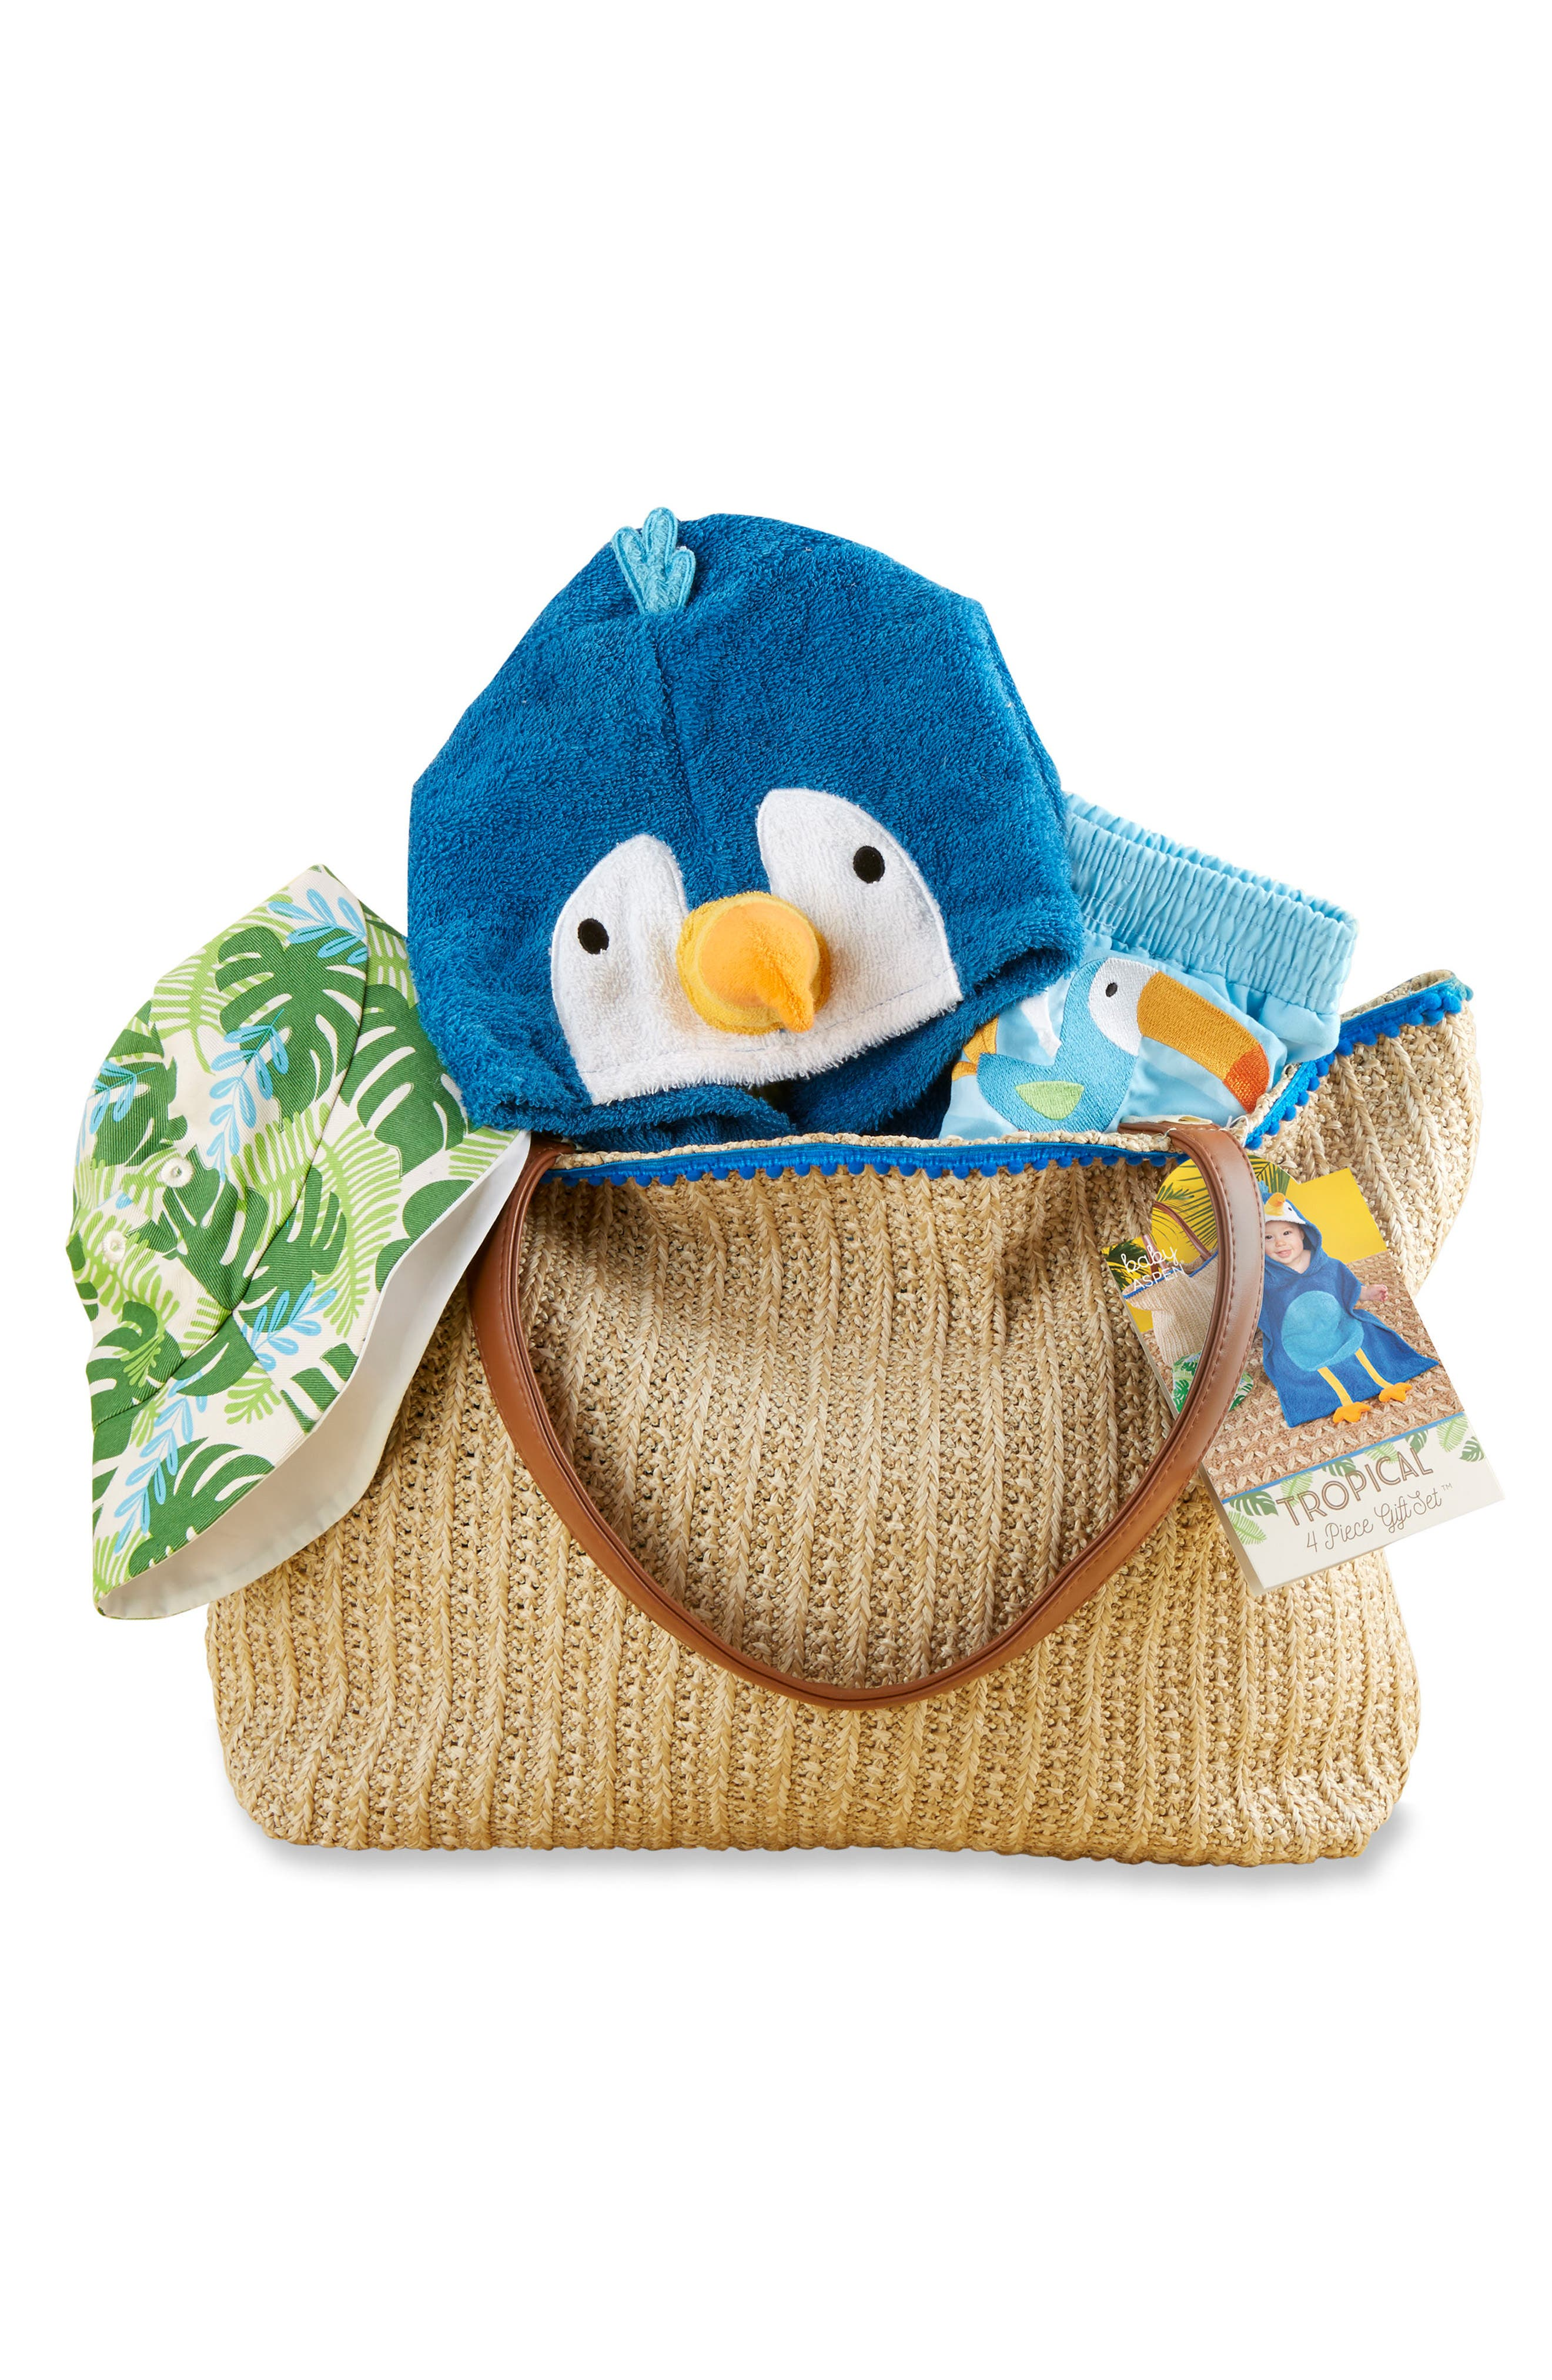 Tropical Hooded Towel, Swimsuit, Sun Hat & Tote Set,                             Main thumbnail 1, color,                             BLUE/ GREY/ WHITE/ BROWN